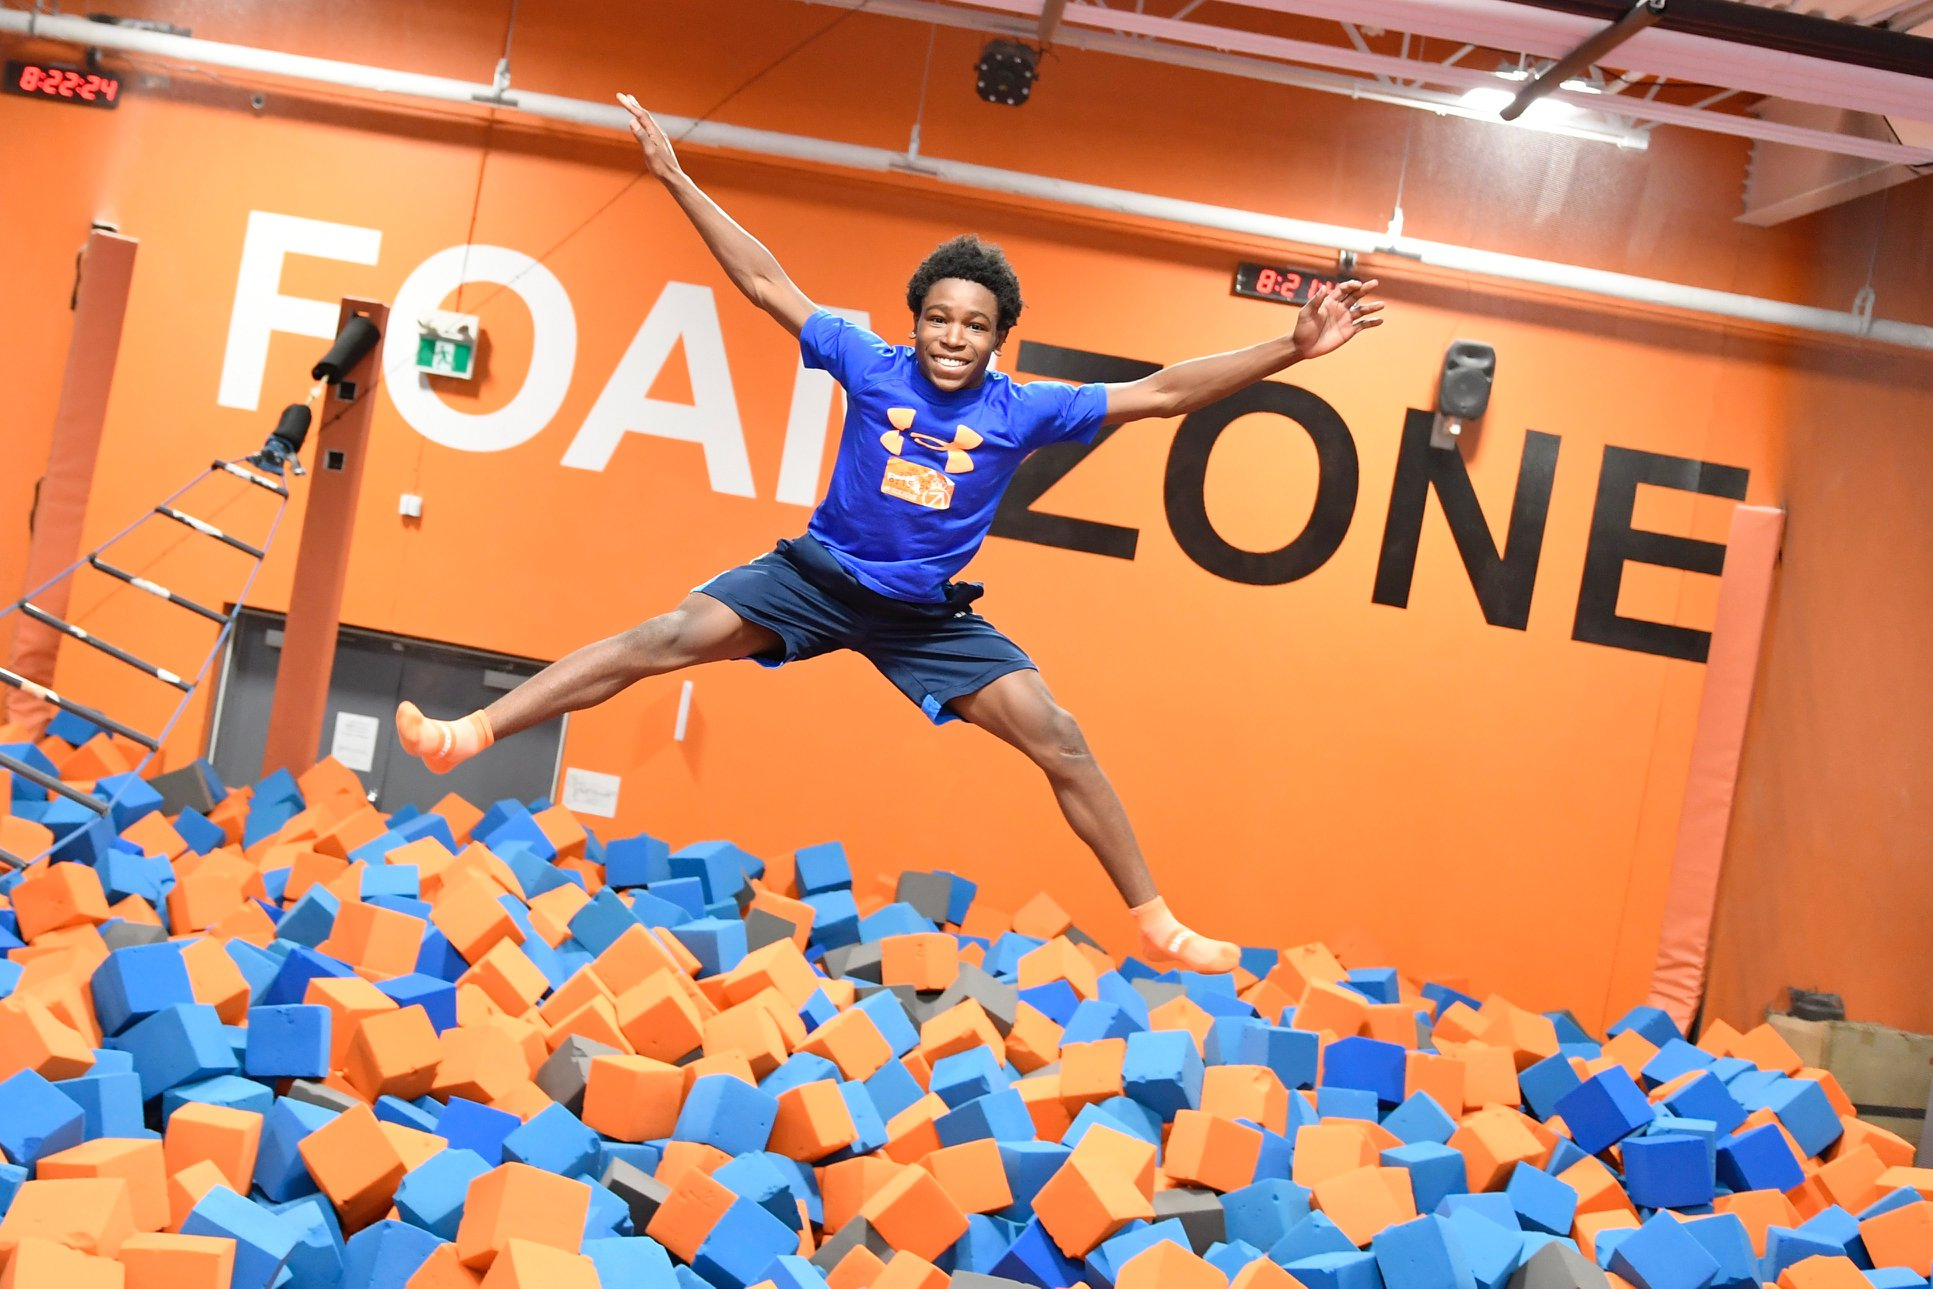 1548864261 sky zone moncton jumper